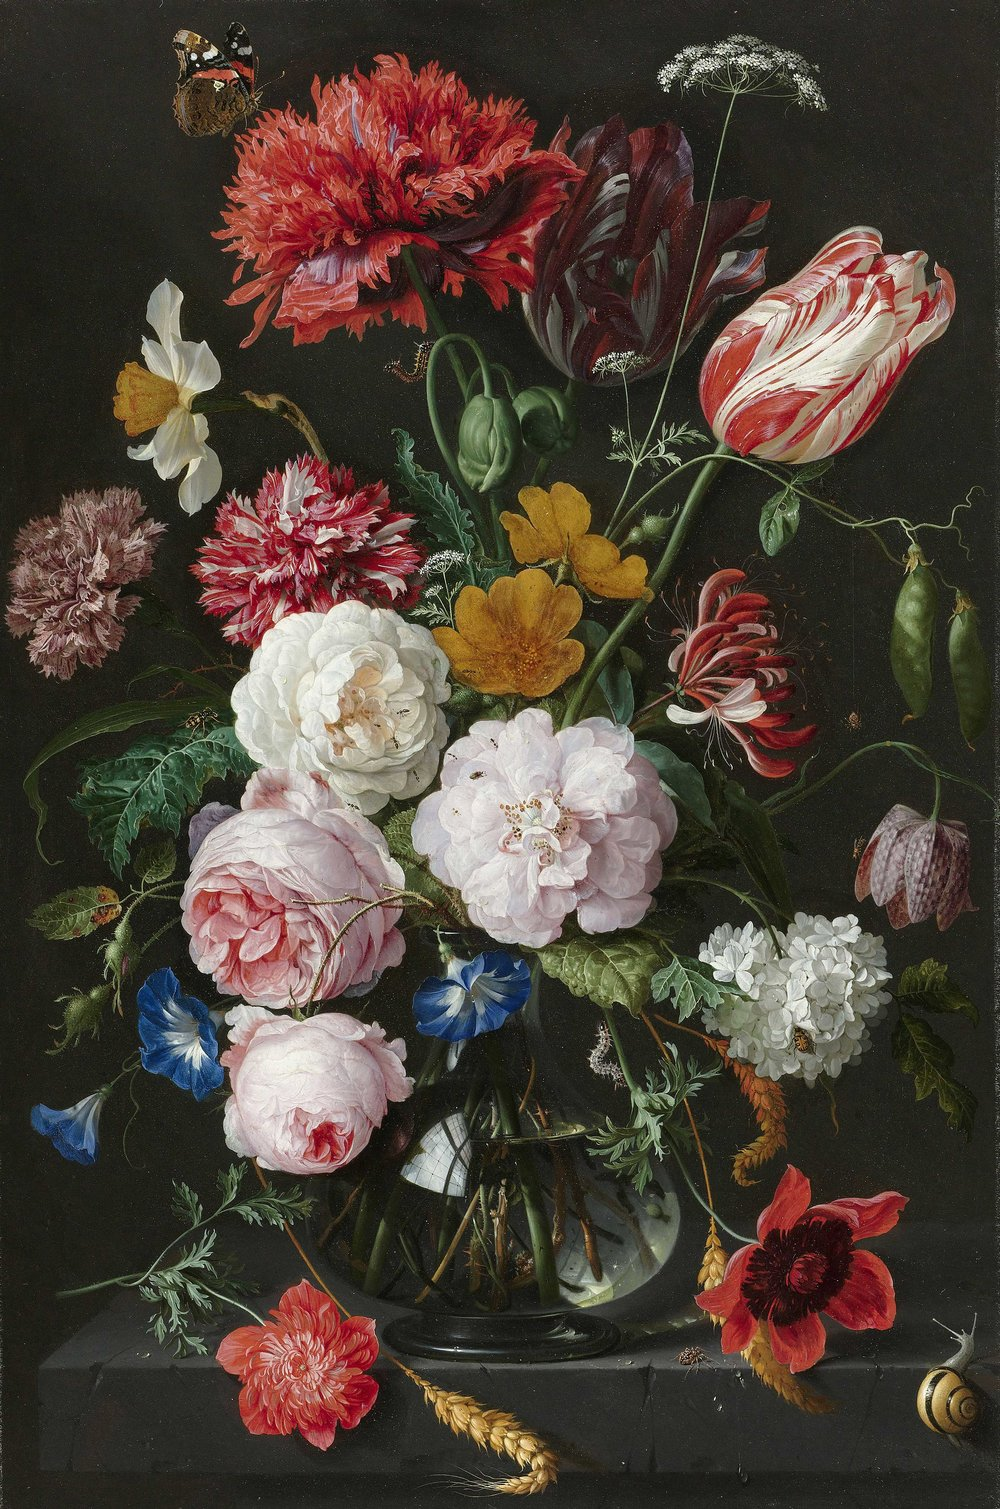 Still Life with Flowers in a Glass Vase -  Jan Davidsz. de Heem                 1650 -1683